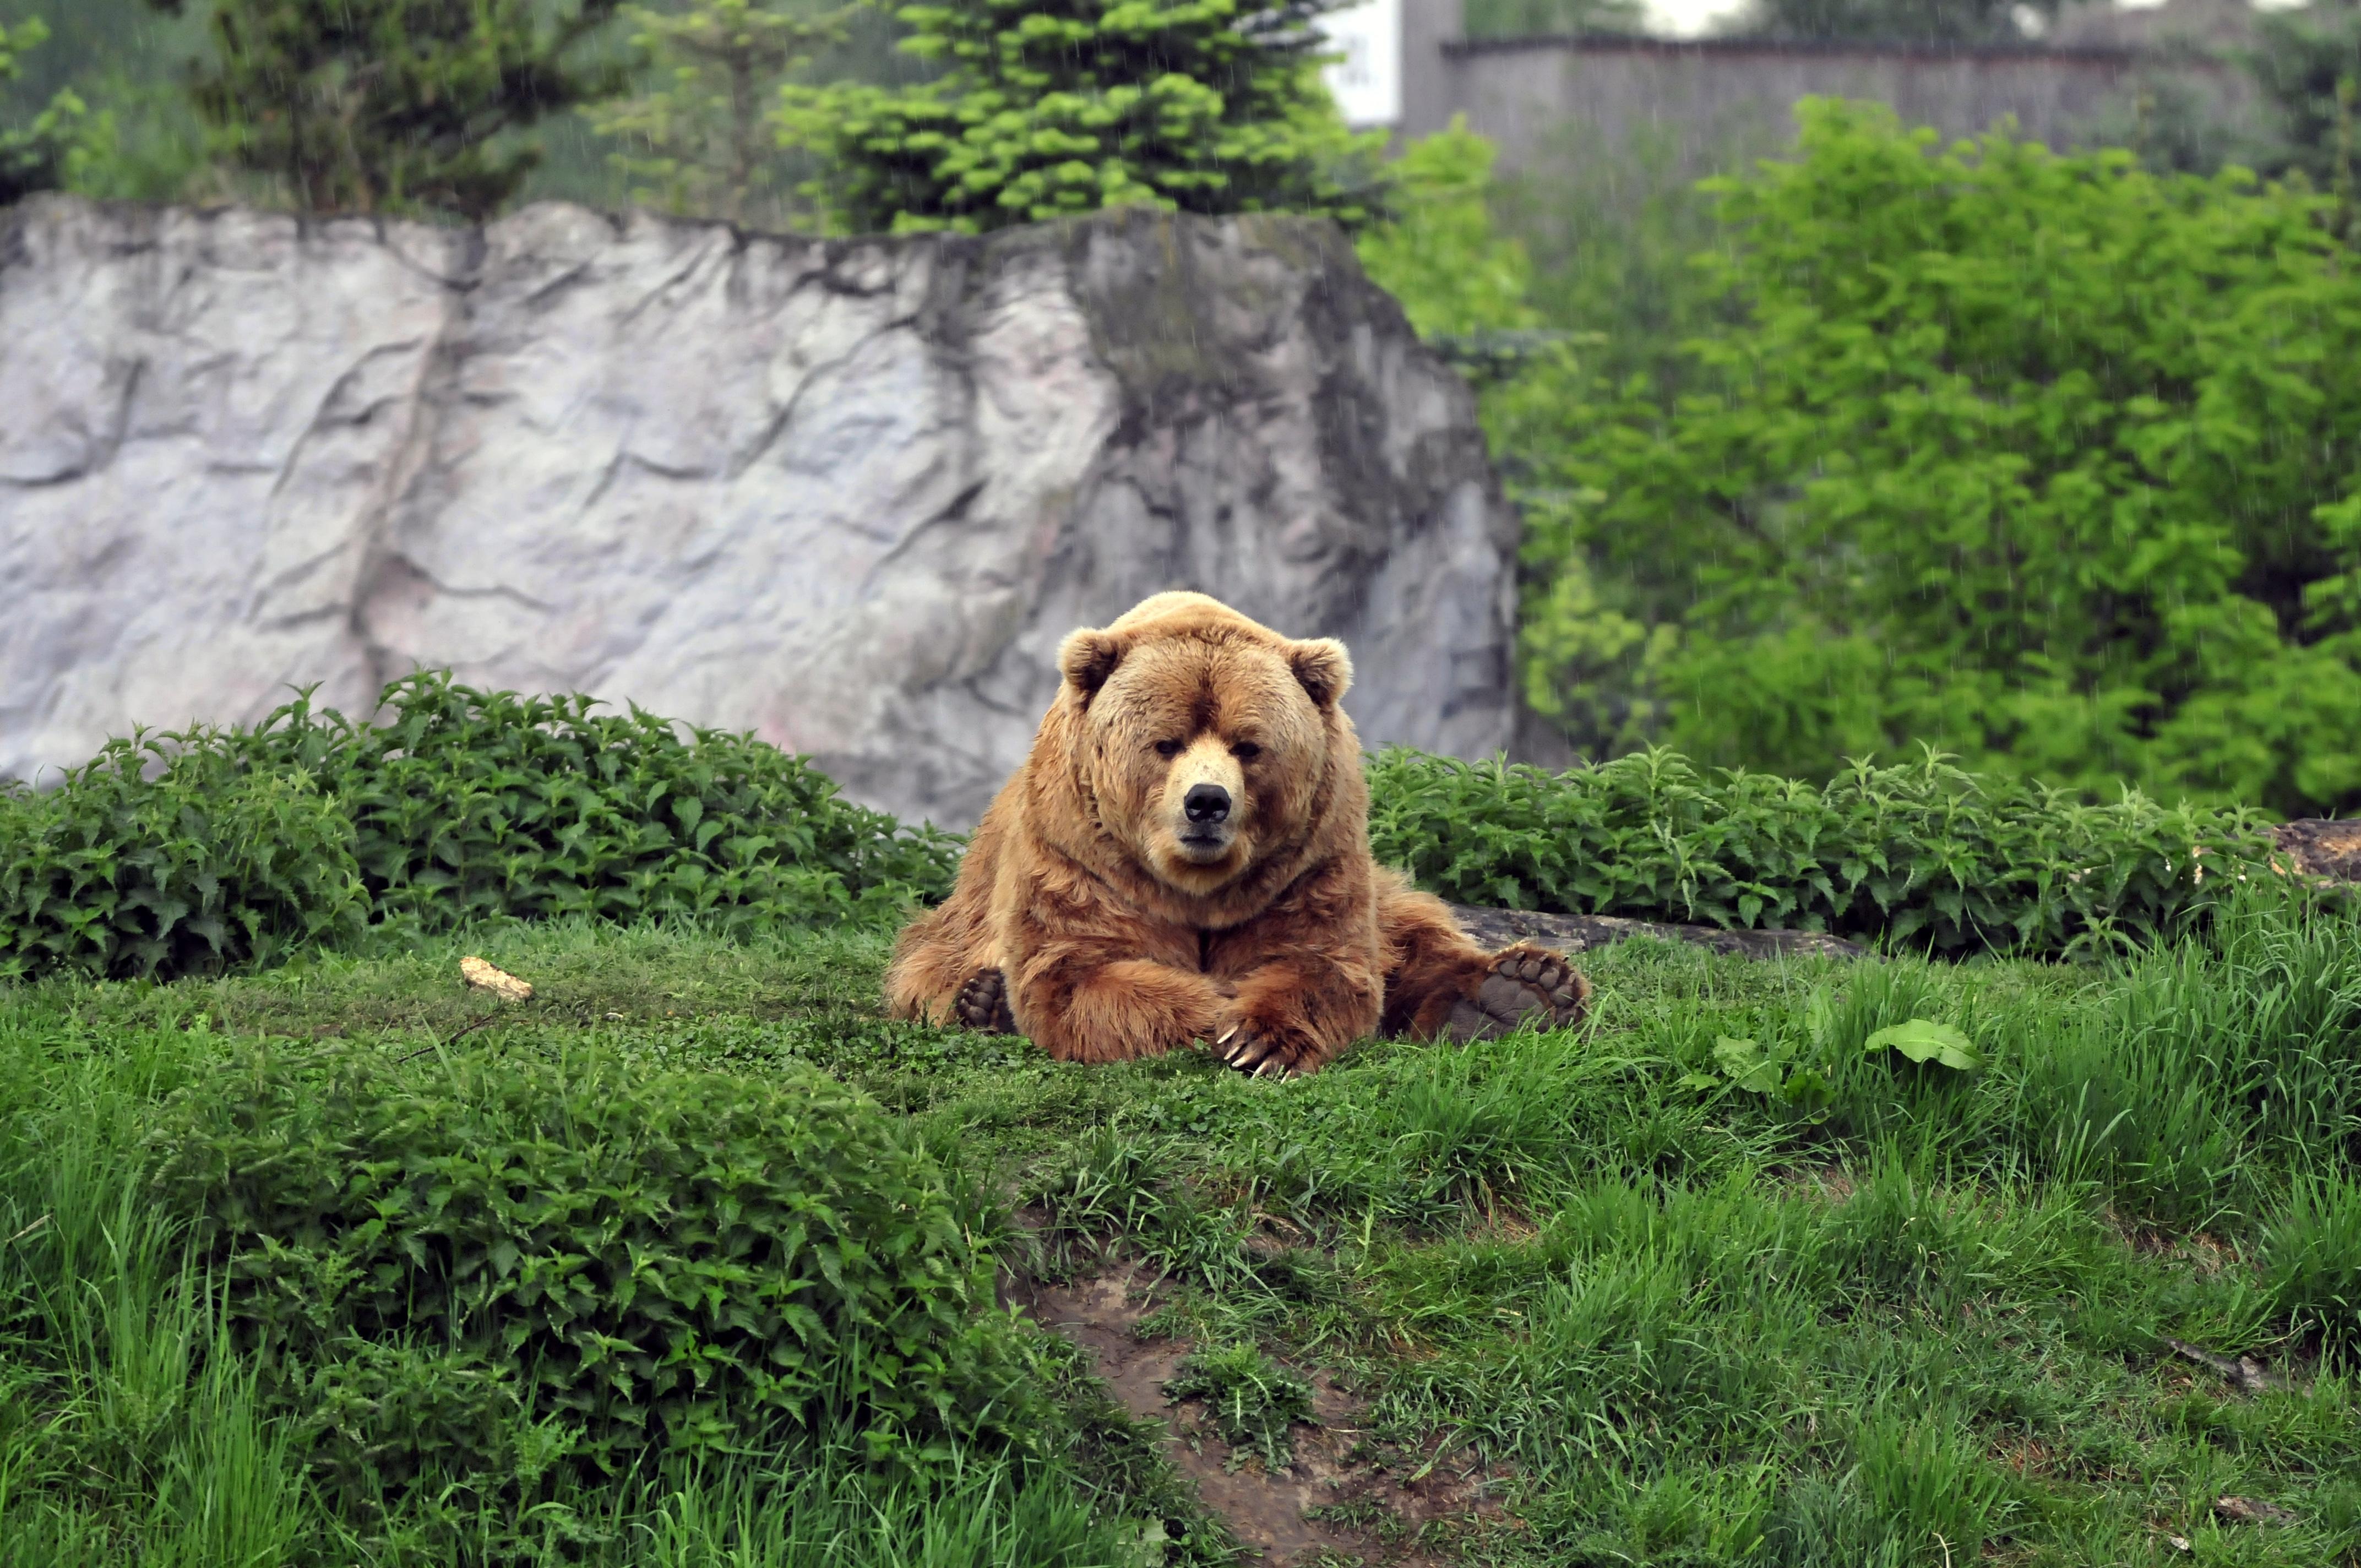 150855 download wallpaper Animals, Bear, Brown, Grass, Cool, To Lie Down, Lie screensavers and pictures for free